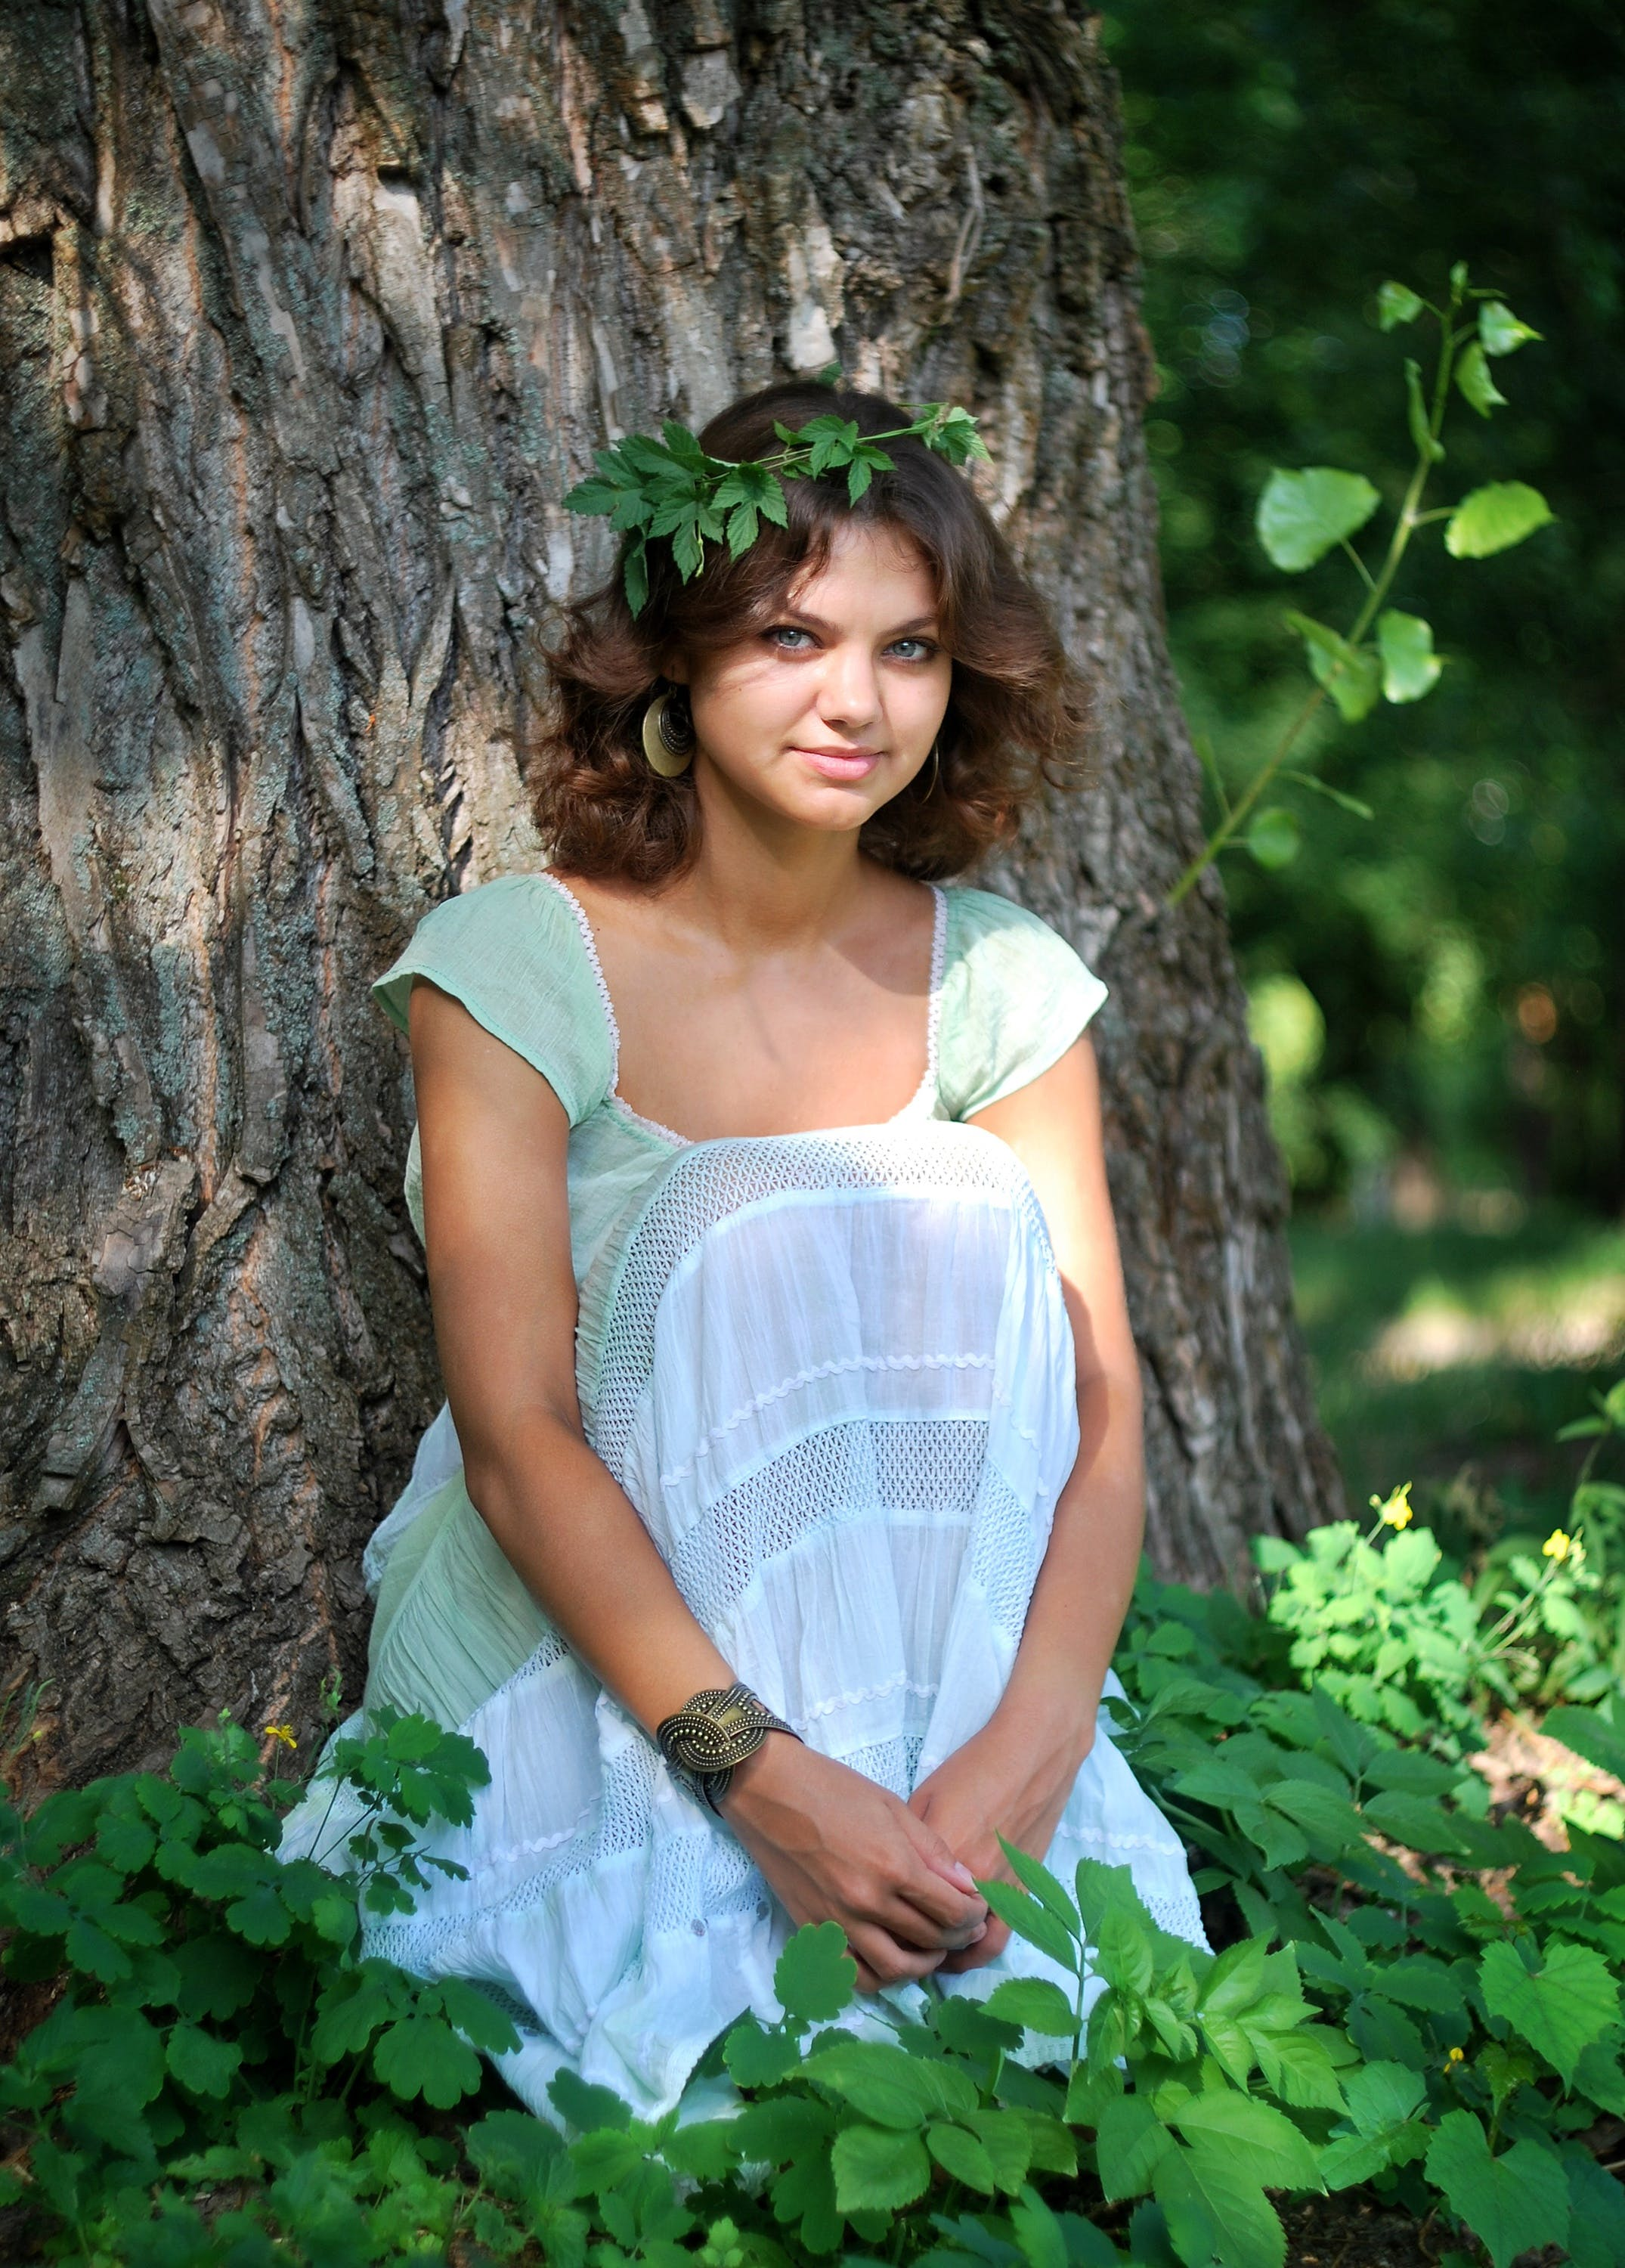 Smiling Woman Wearing Green Leaf Crown With Green and White Sleeveless Dress Sitting in Green Leaf during Day Time